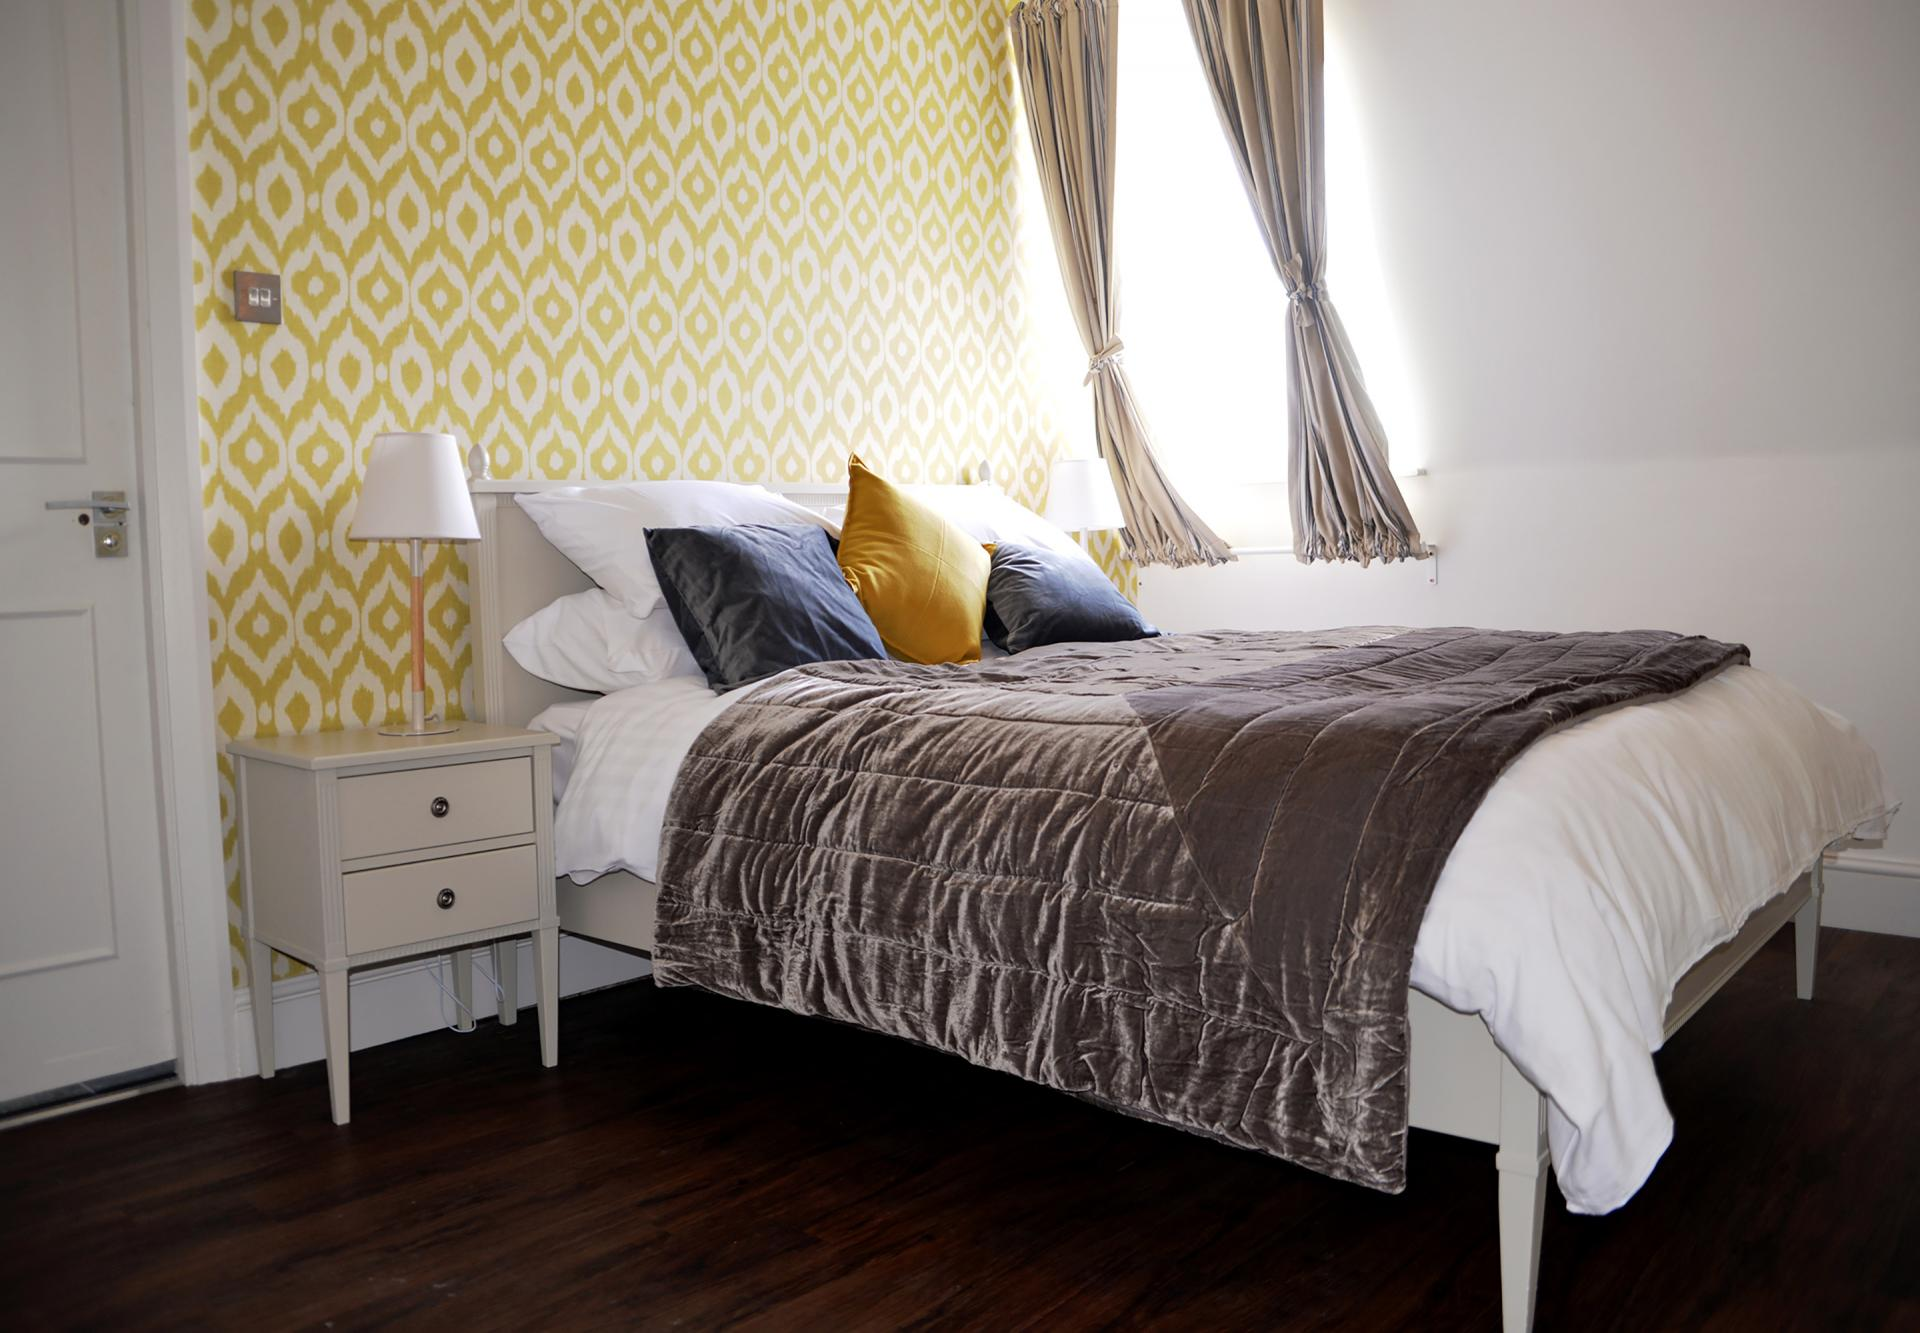 Bedding at Elliot Terrace Apartments, Centre, Plymouth